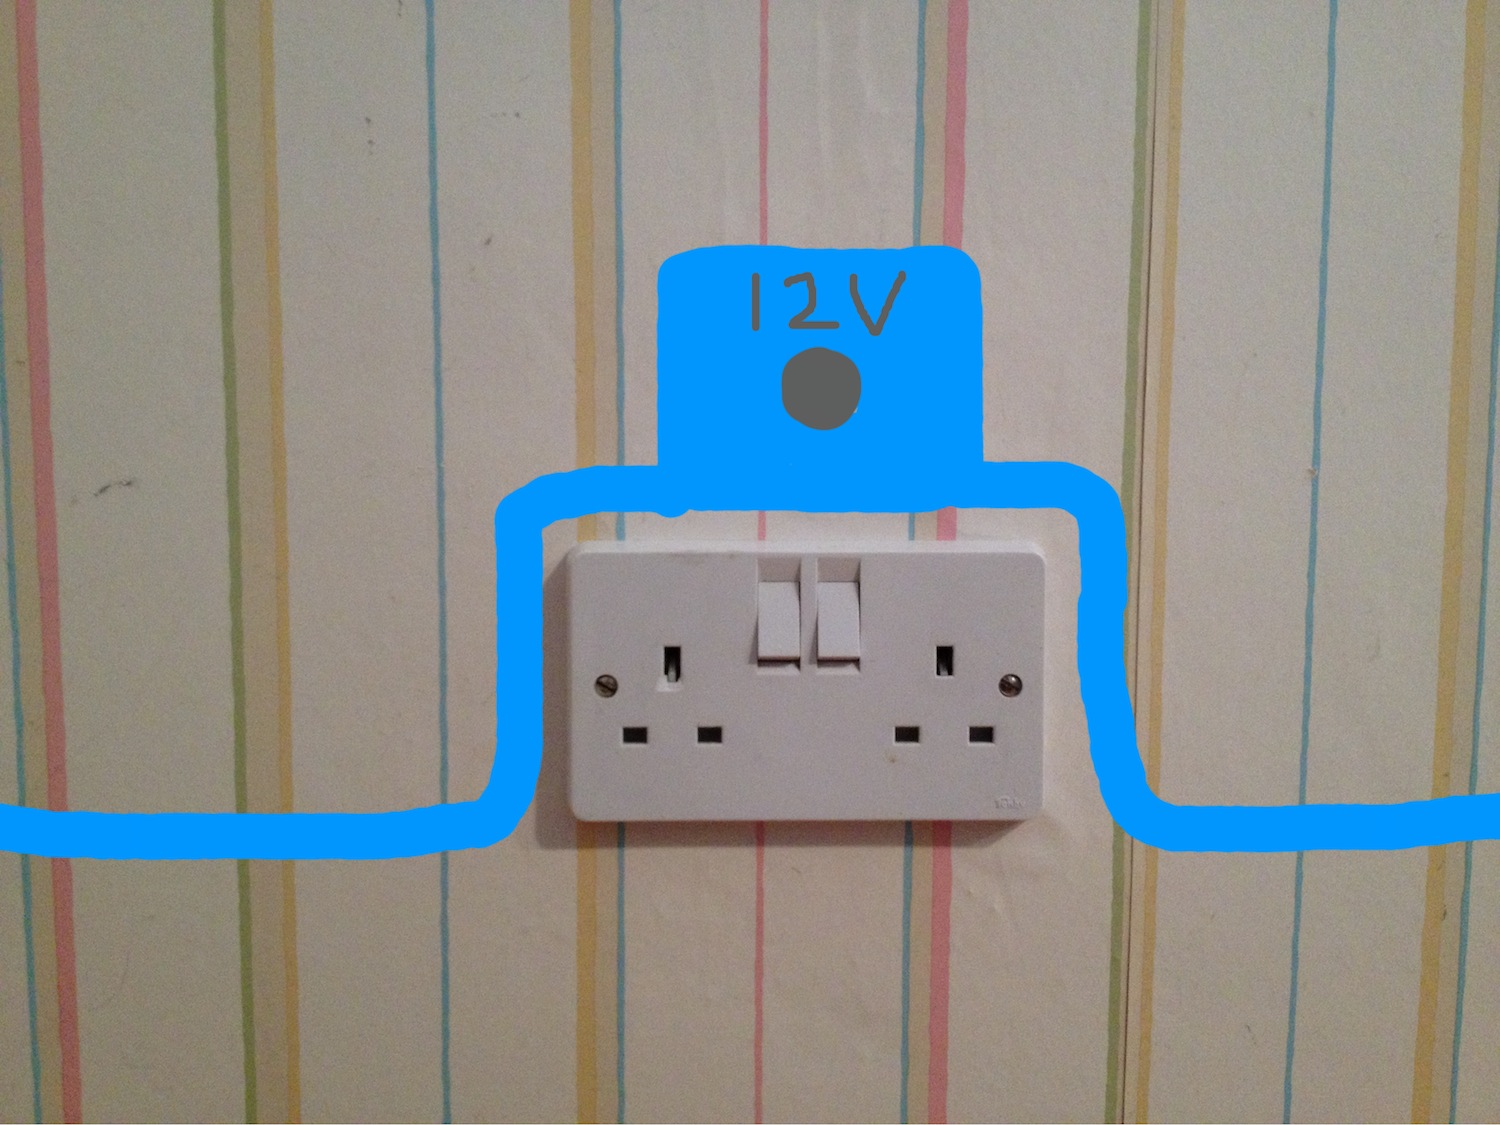 An electricity socket, shown just above two standard UK plug sockets, labelled '12V'